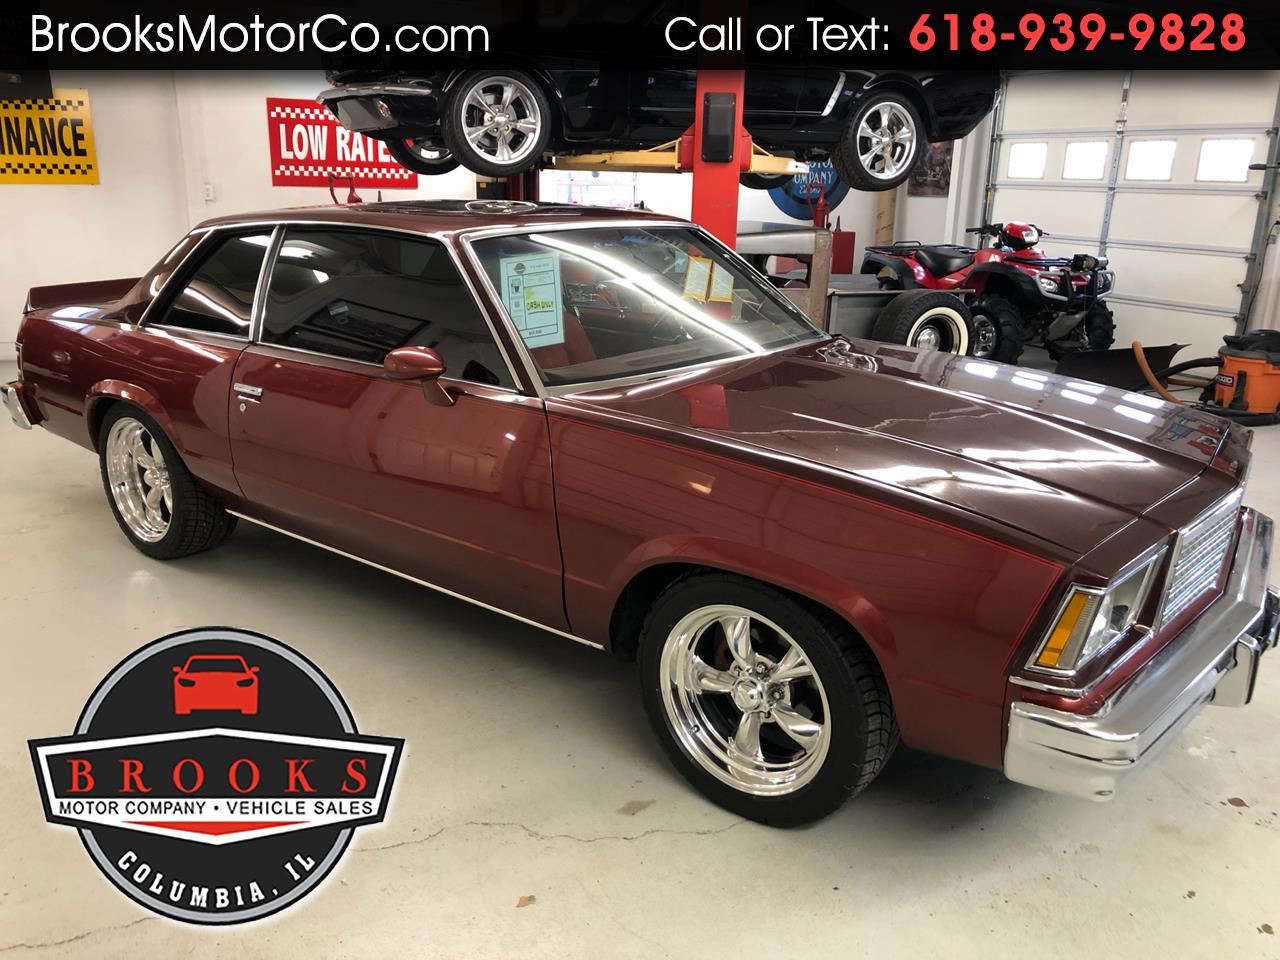 1979 Chevrolet Malibu 2dr Coupe